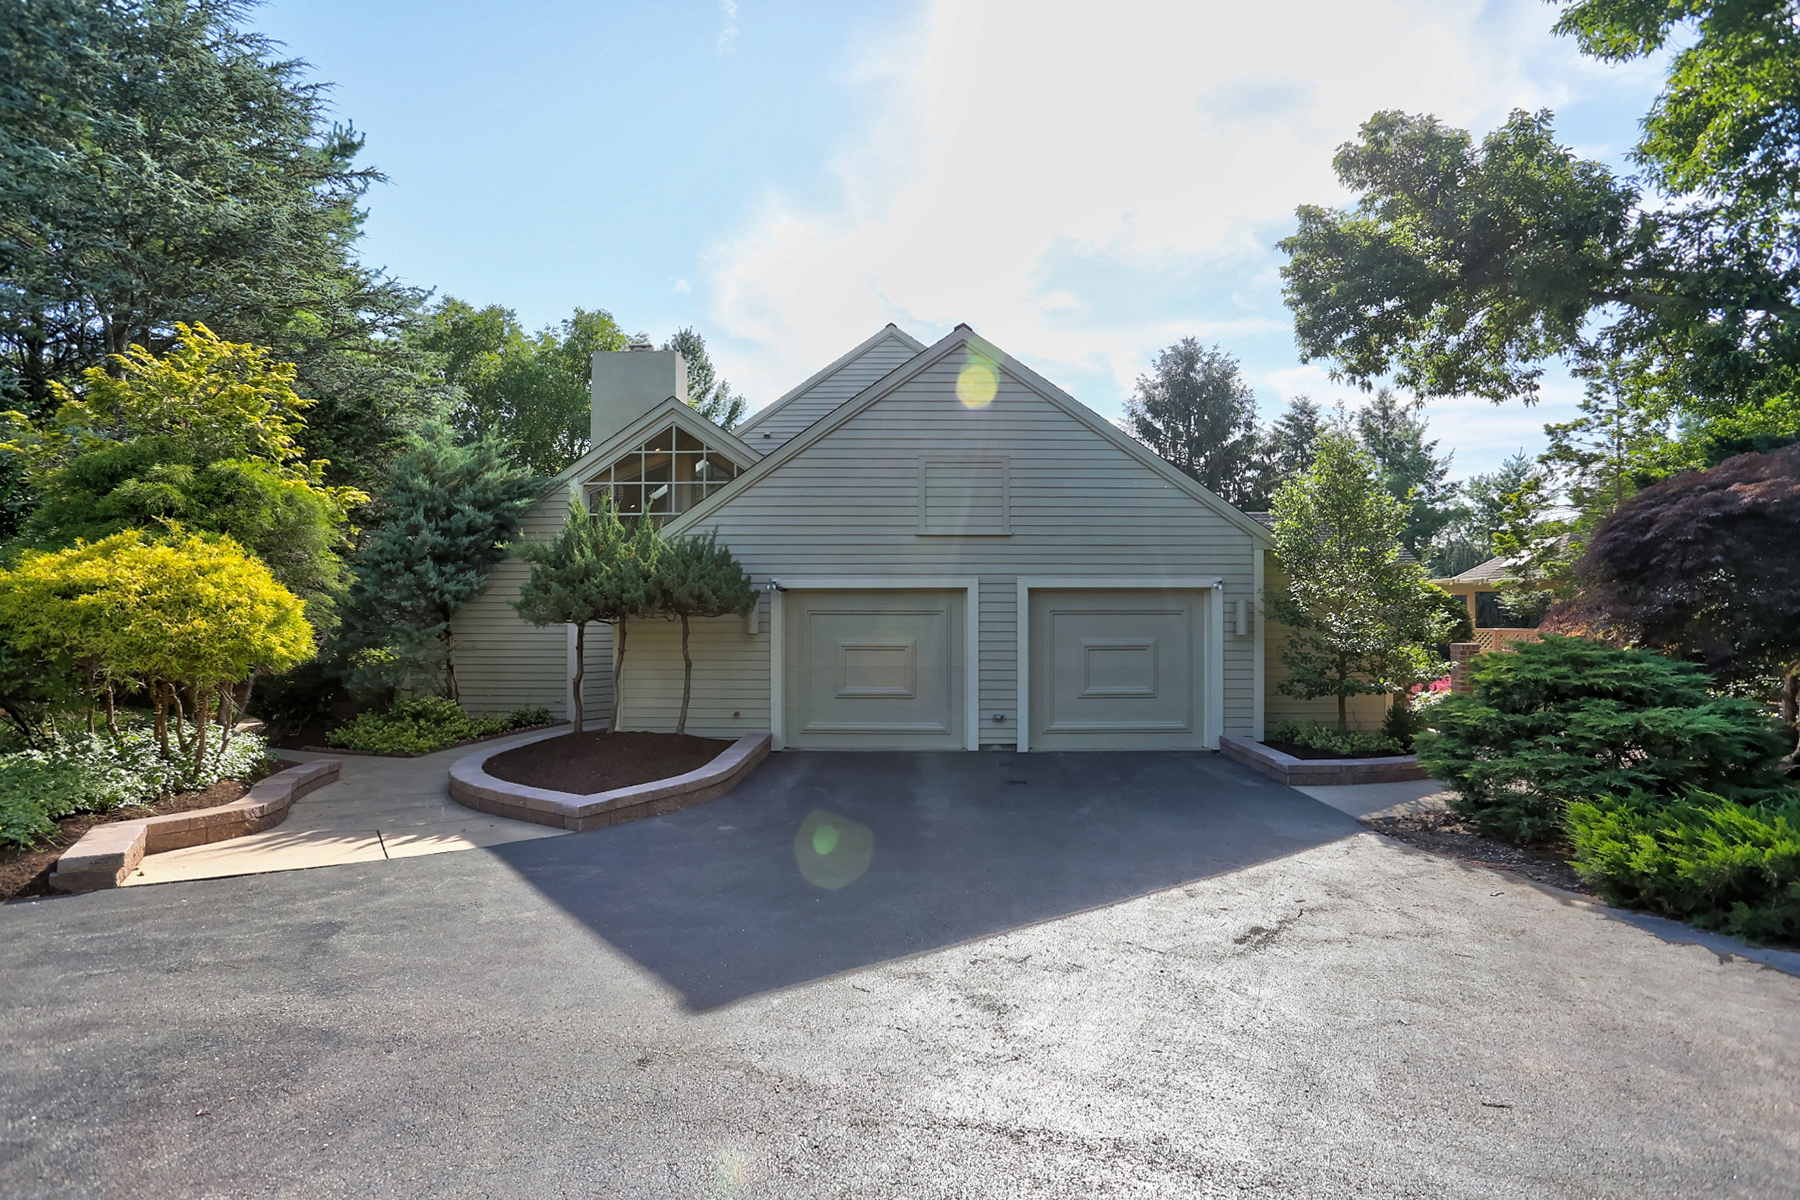 Additional photo for property listing at 1302 Beaconfield Lane 1302 Beaconfield Lane Lancaster, Pennsylvania 17601 United States